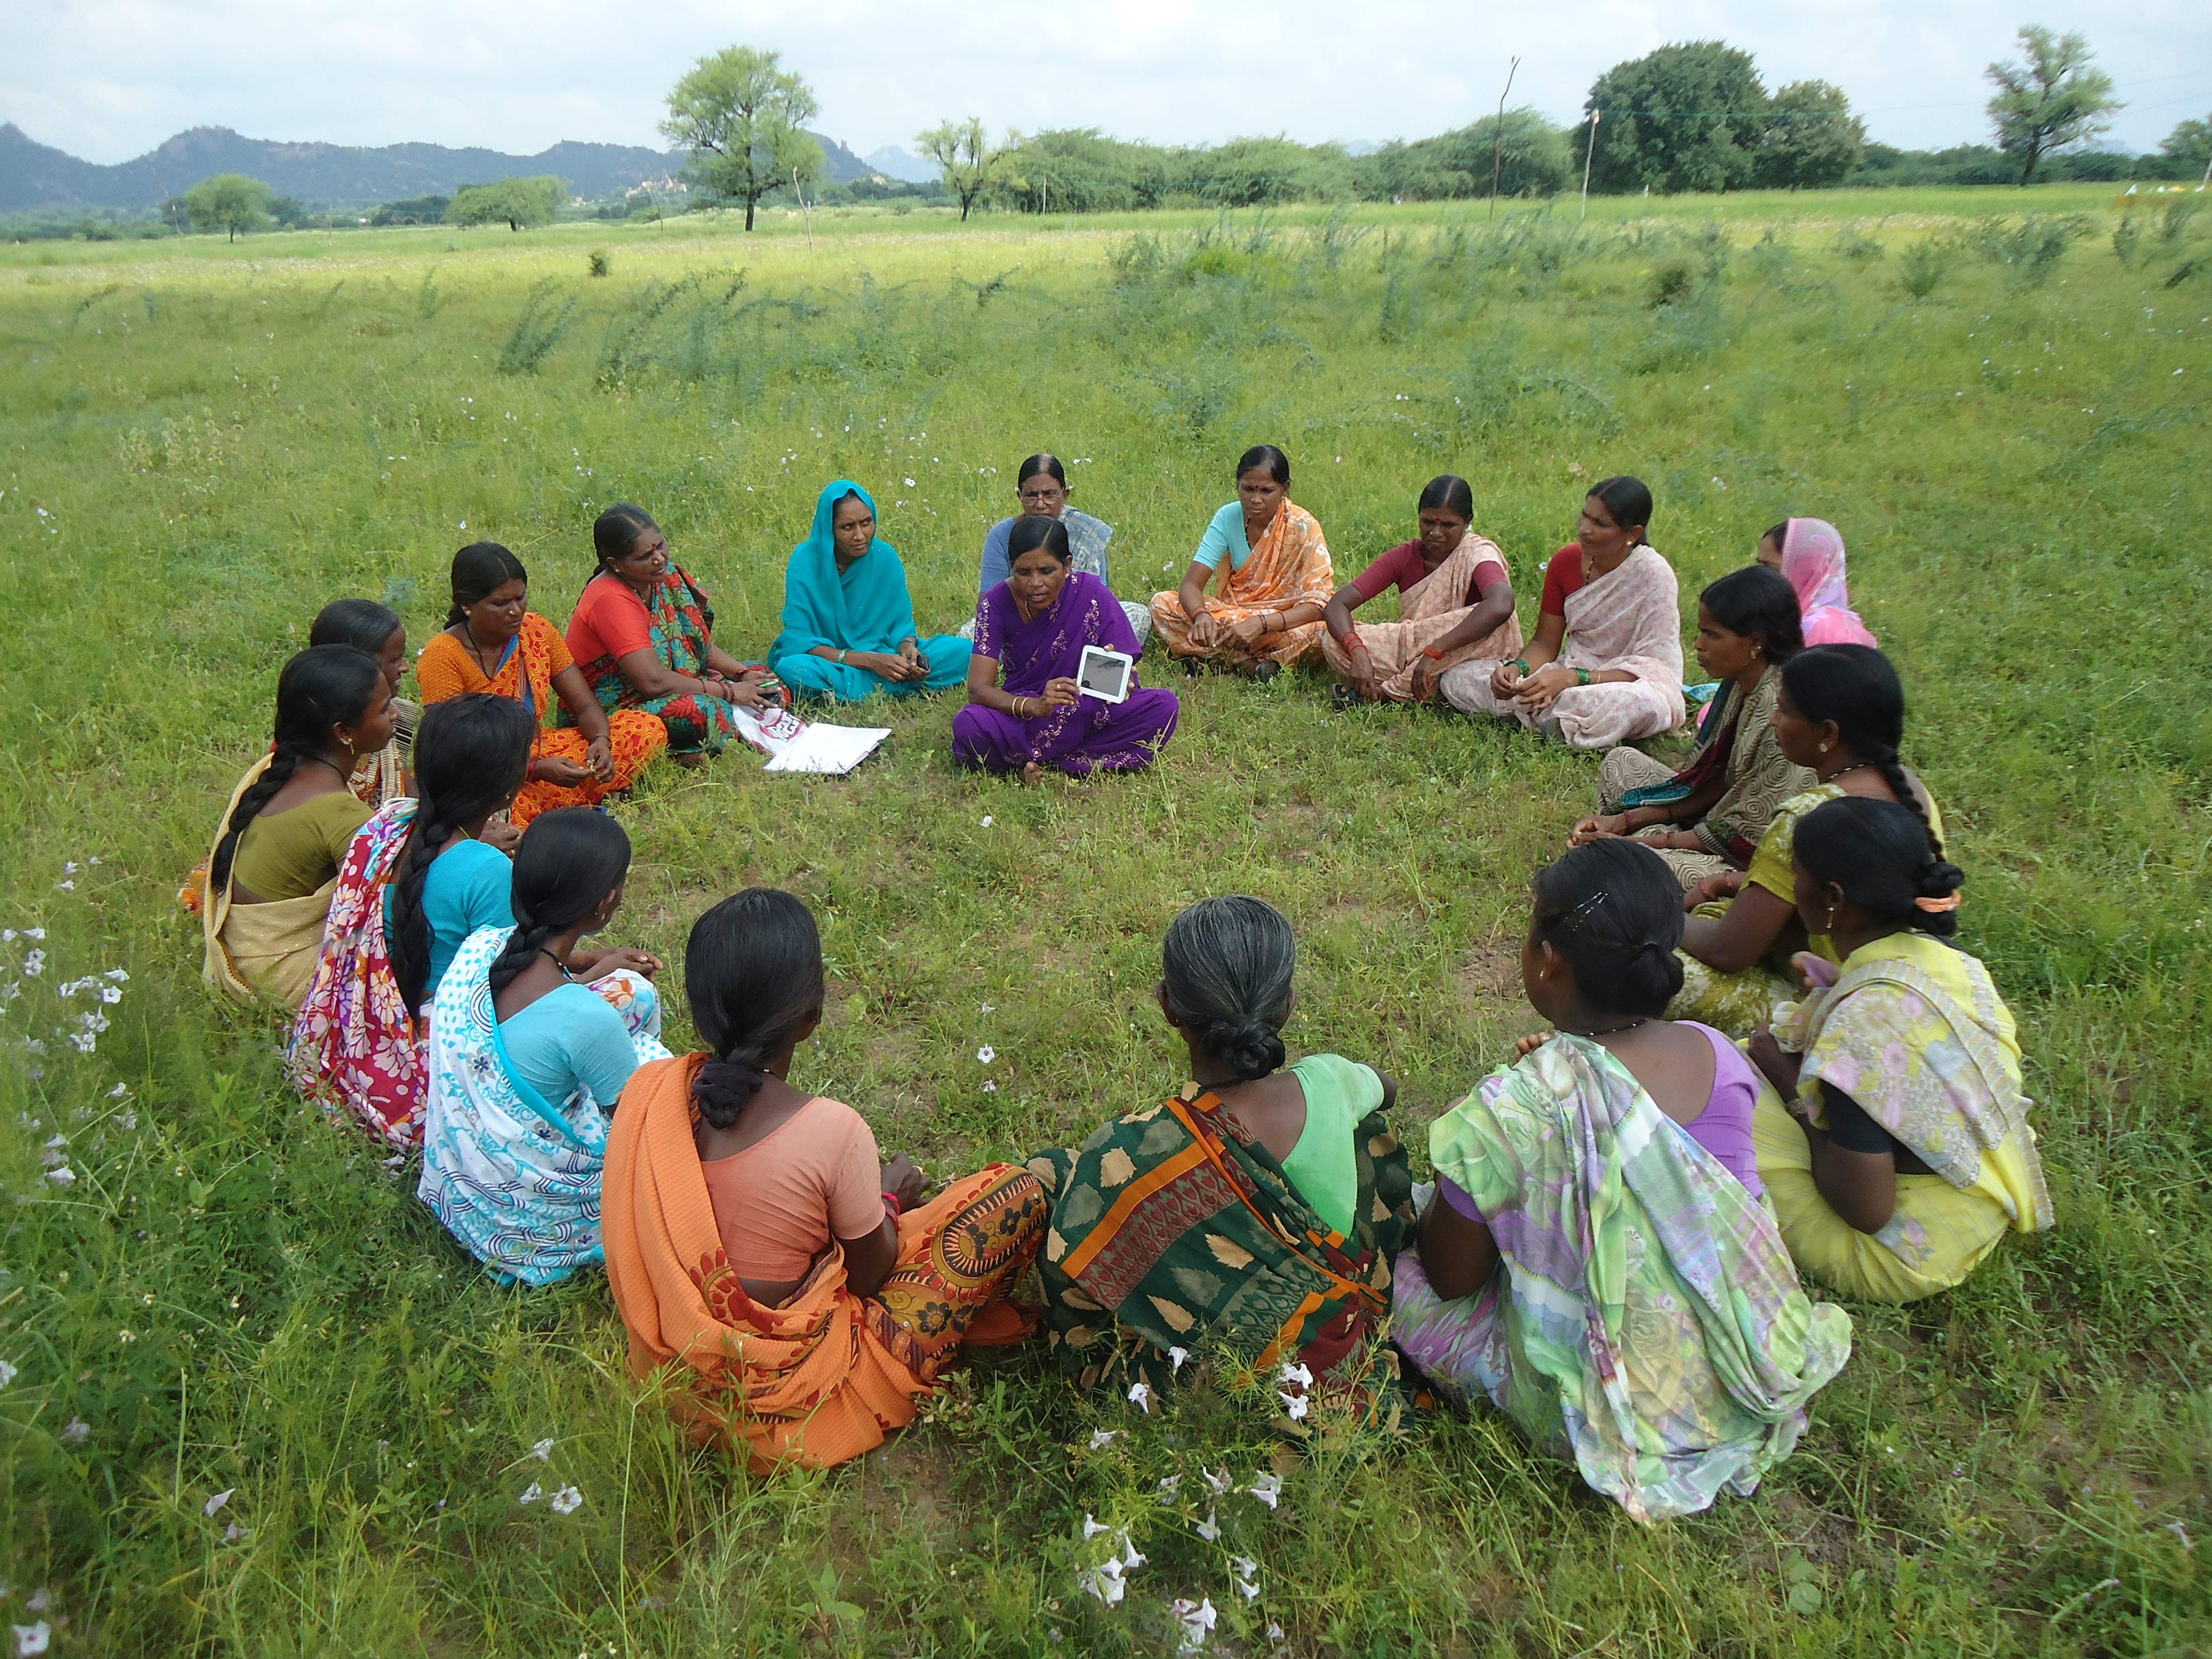 A woman trains others in the use of digital tools